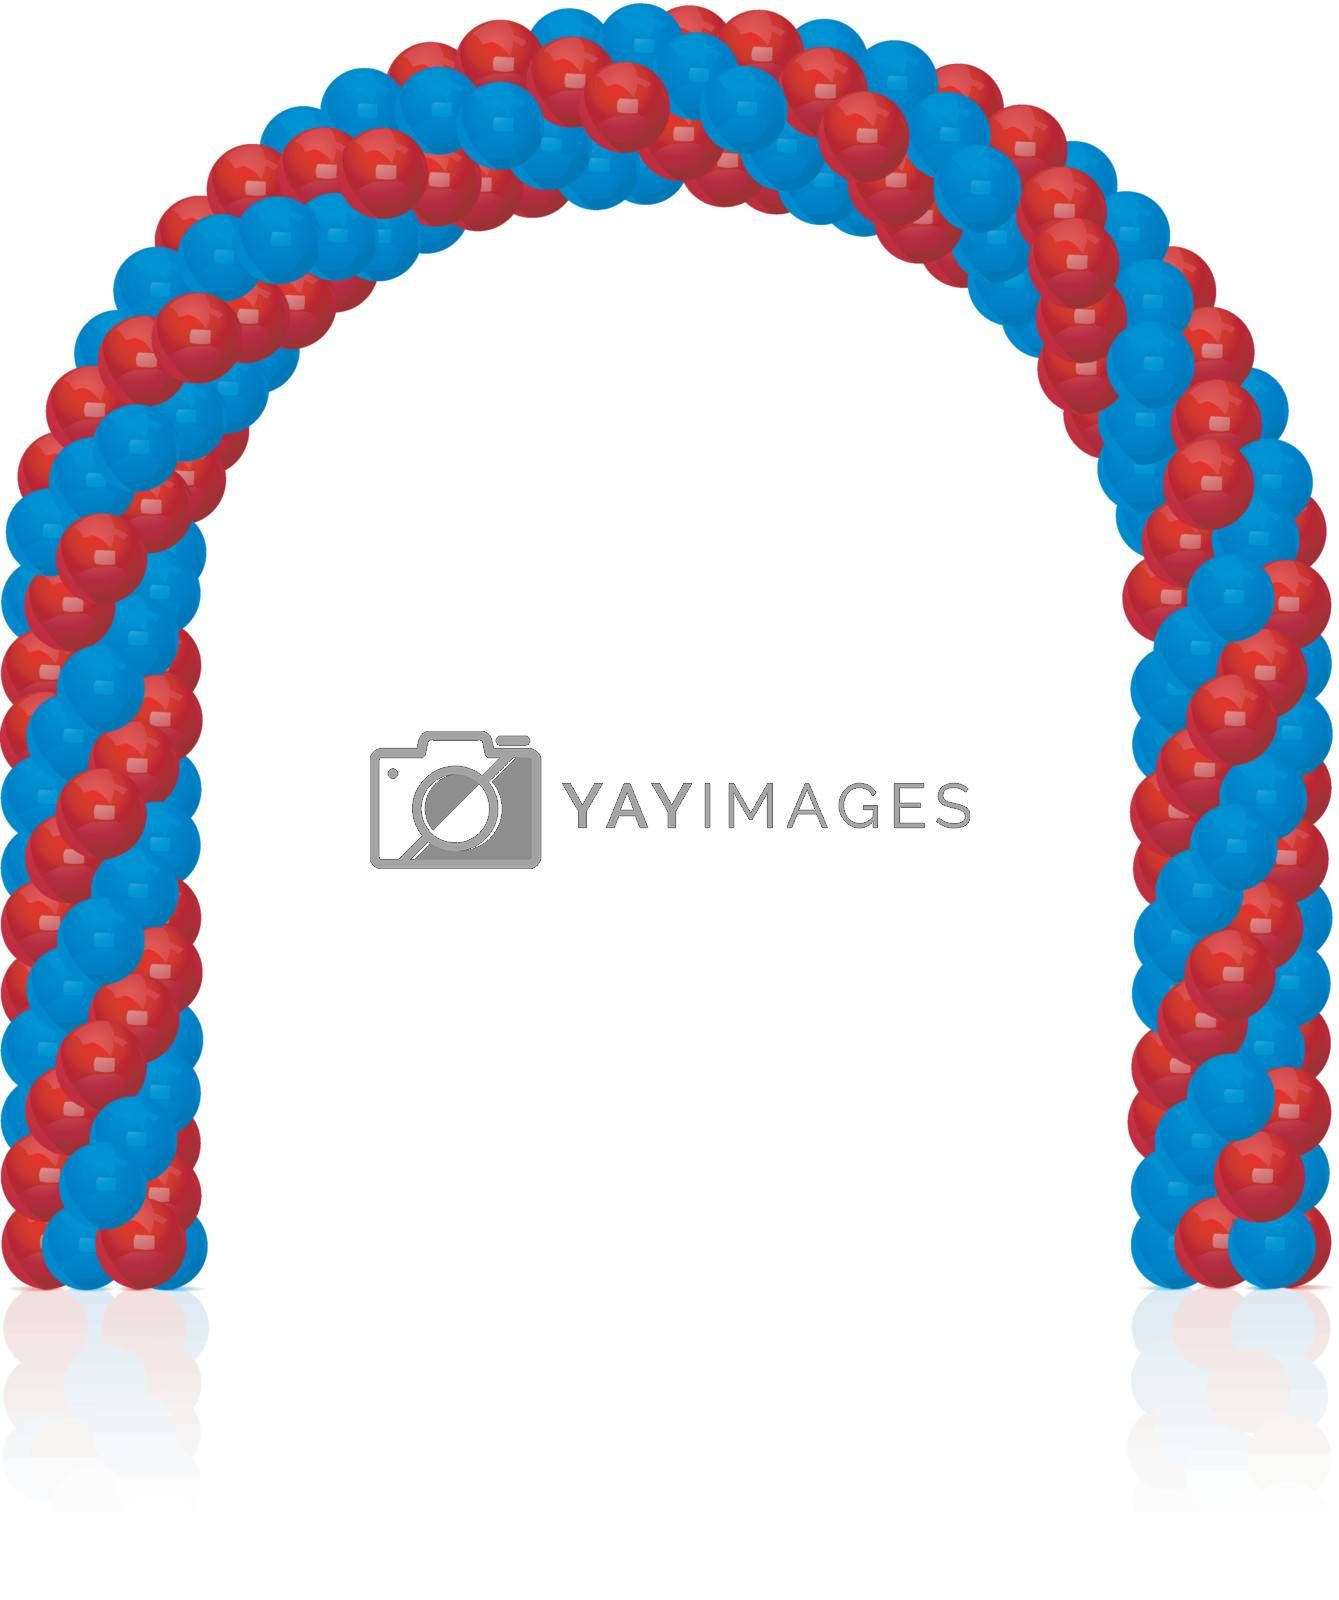 Arch of balloons twisted in a spiral form on white